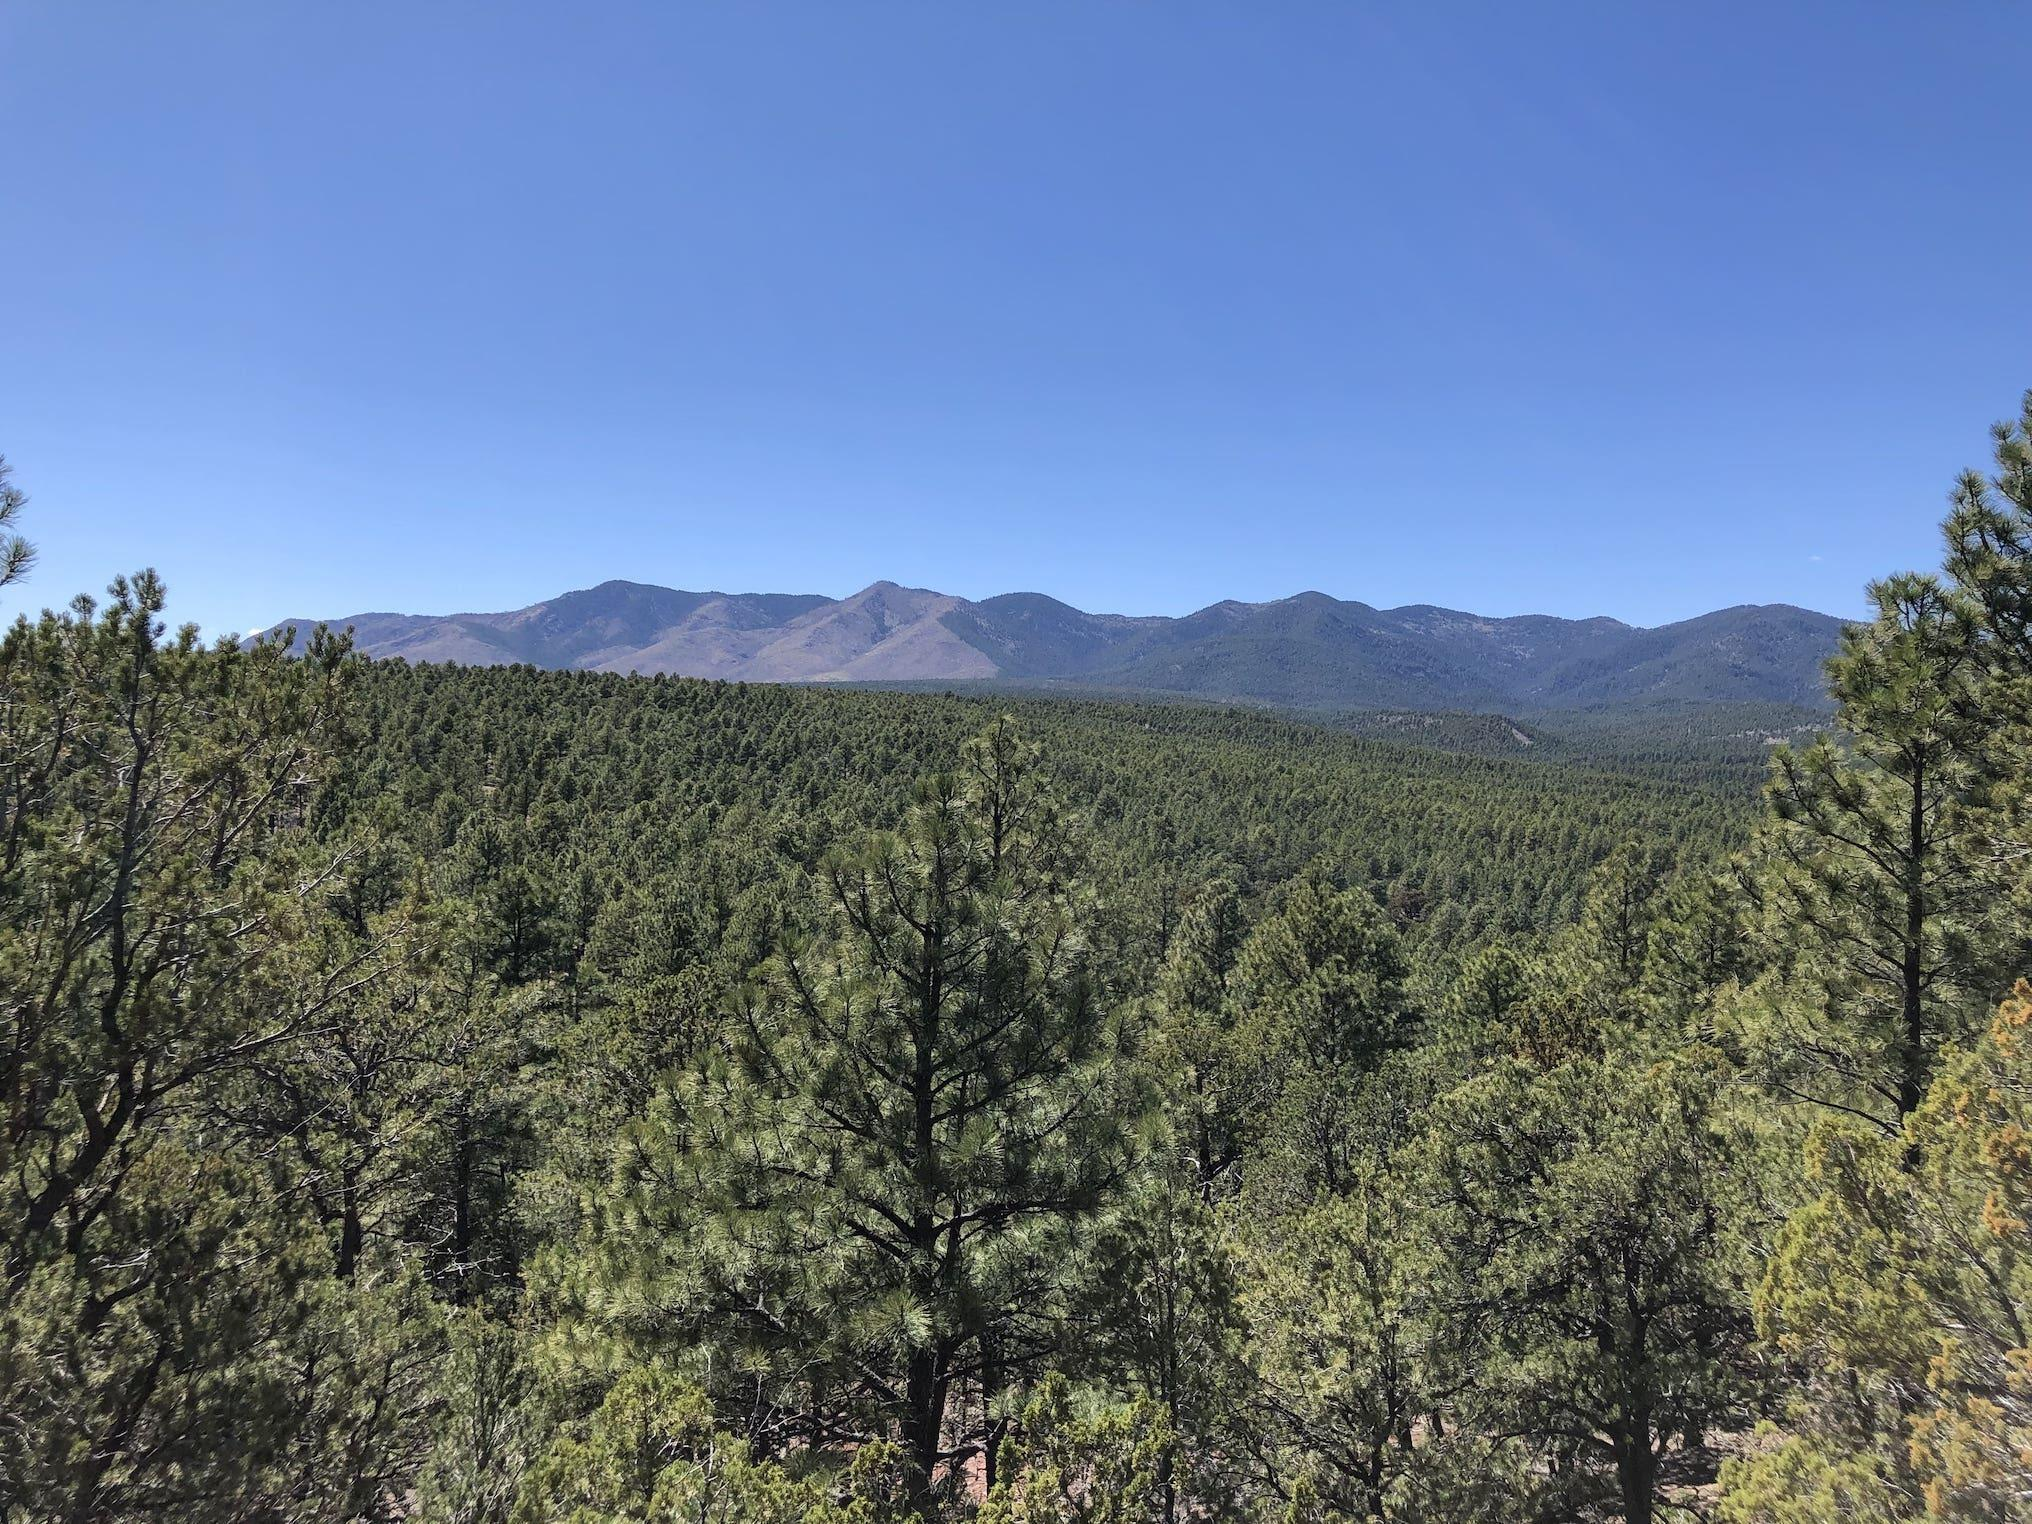 Lot 7 St Hwy 131 Property Photo - Manzano, NM real estate listing